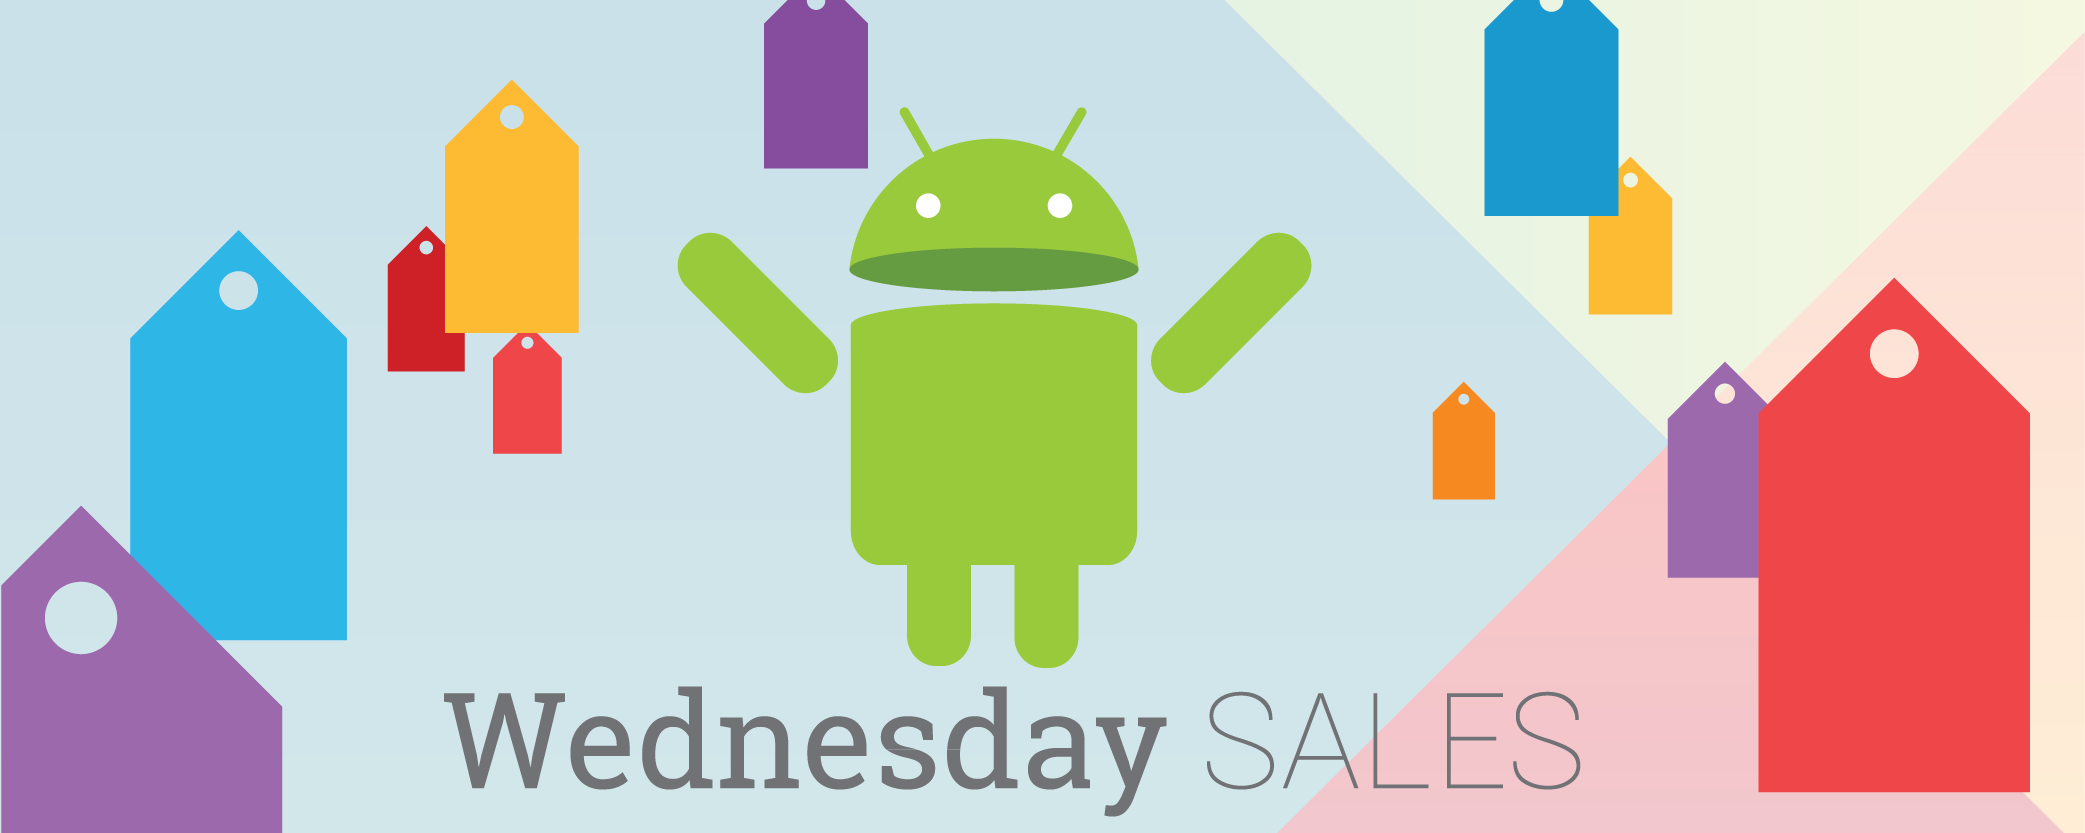 12 temporarily free and 35 on-sale apps and games for Wednesday